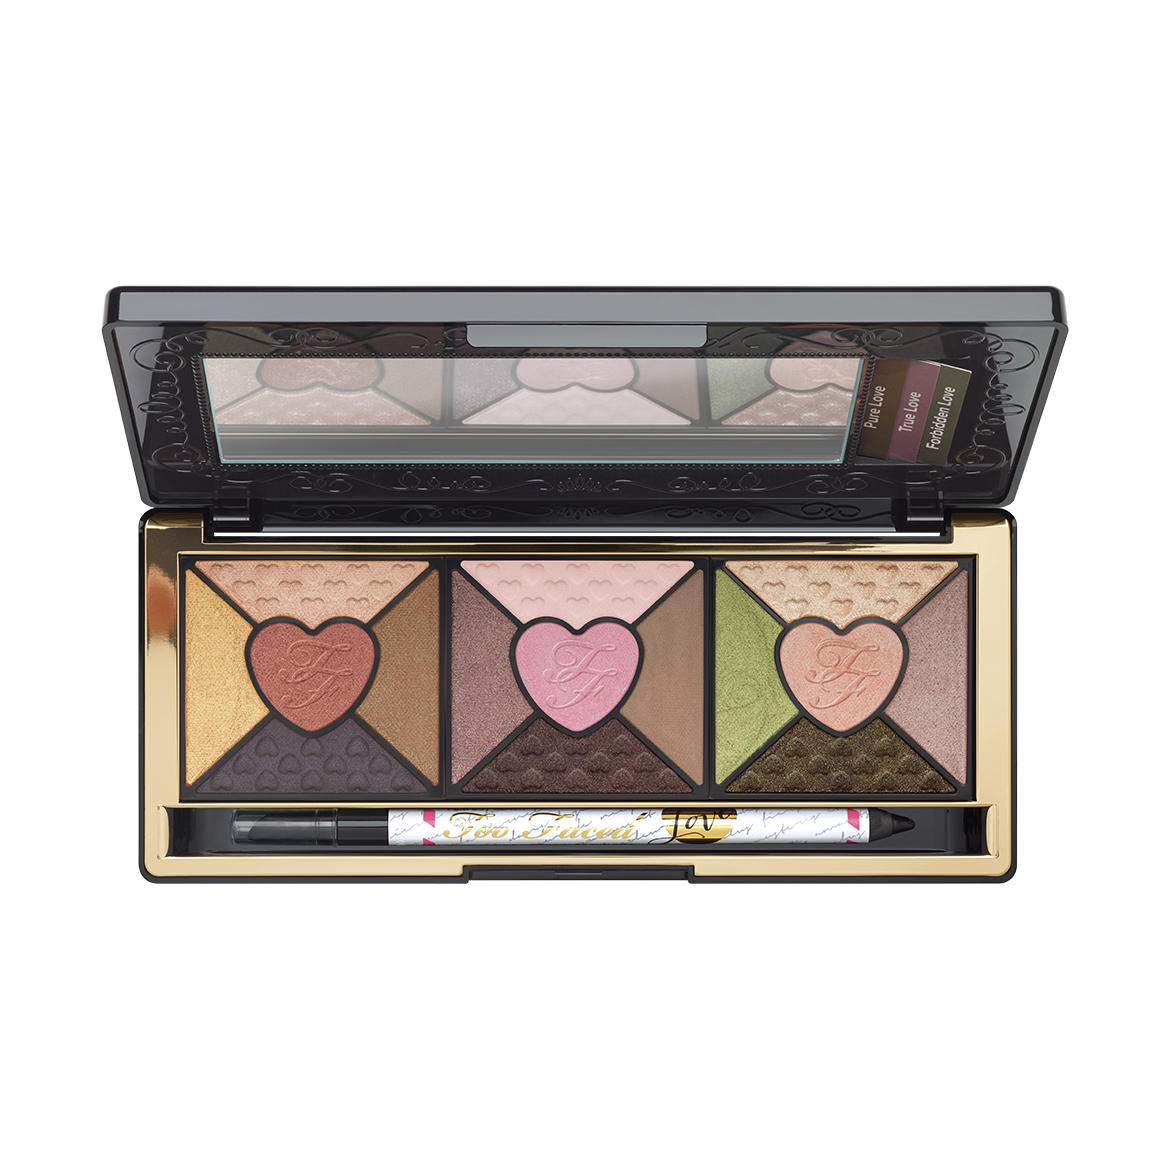 Too Faced Love Passionately Pretty Eyeshadow Palette